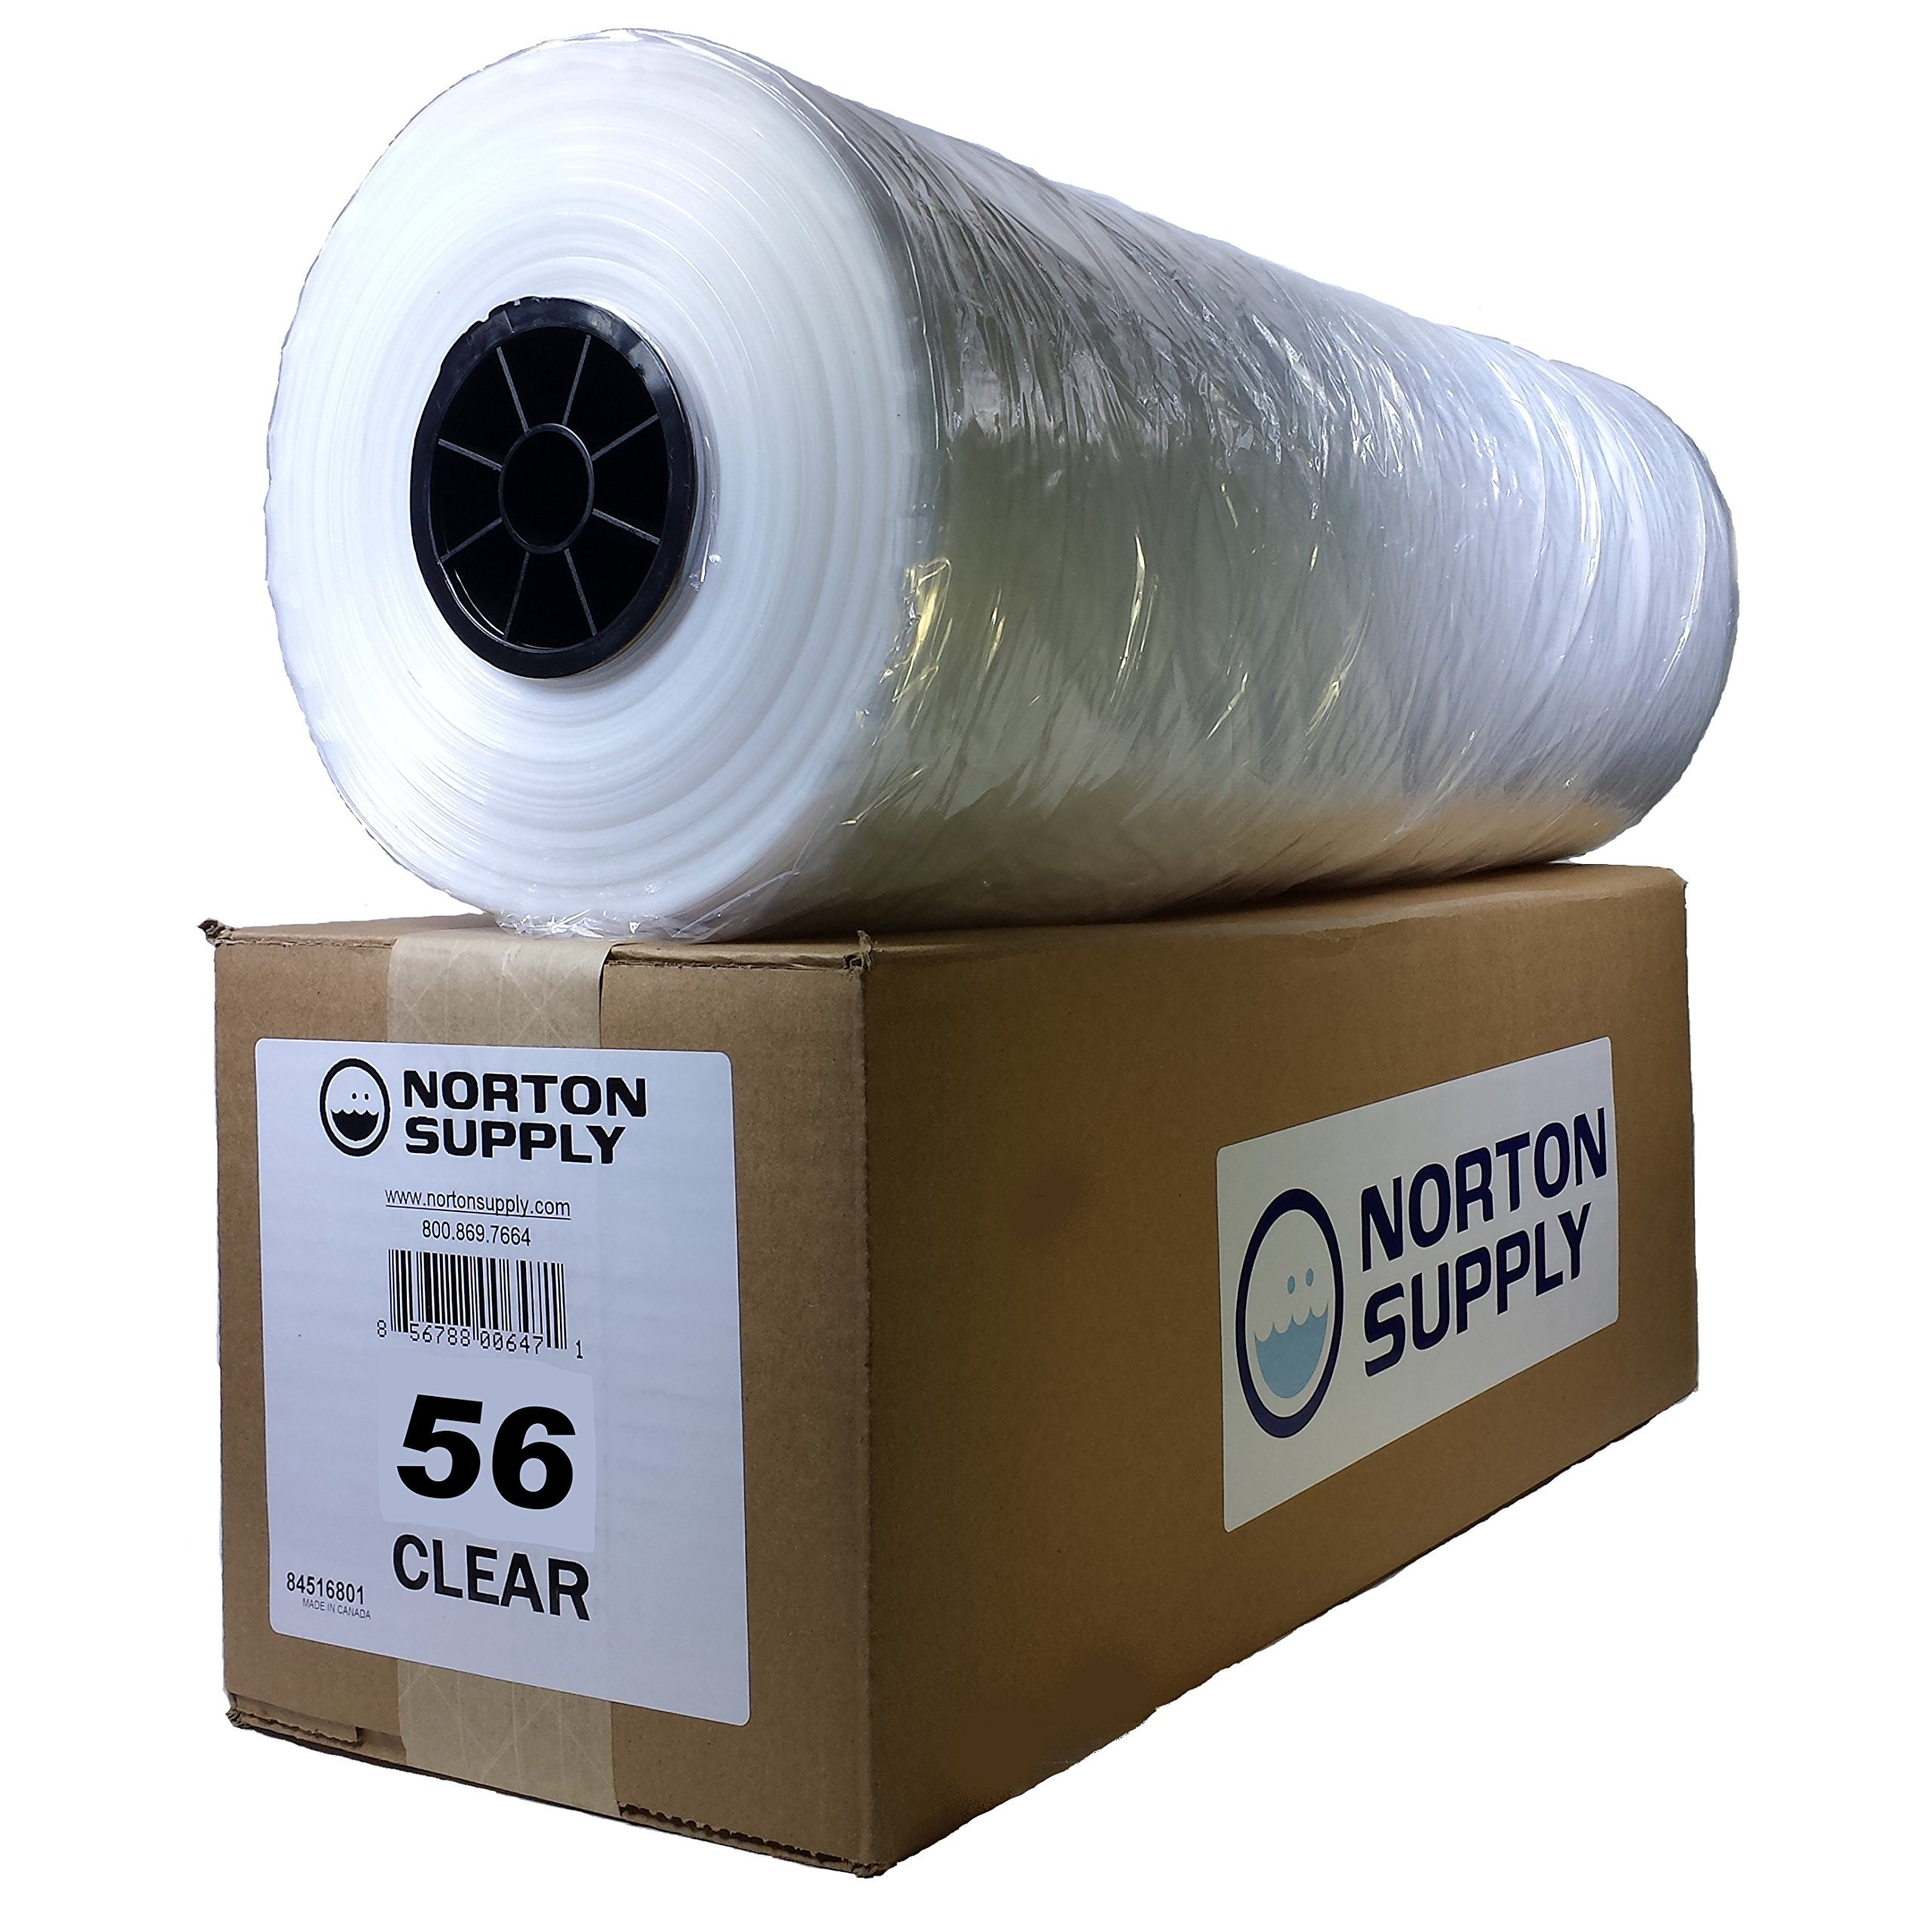 Norton Supply Dry Cleaning Poly Bags - 56'', 100 Gauge